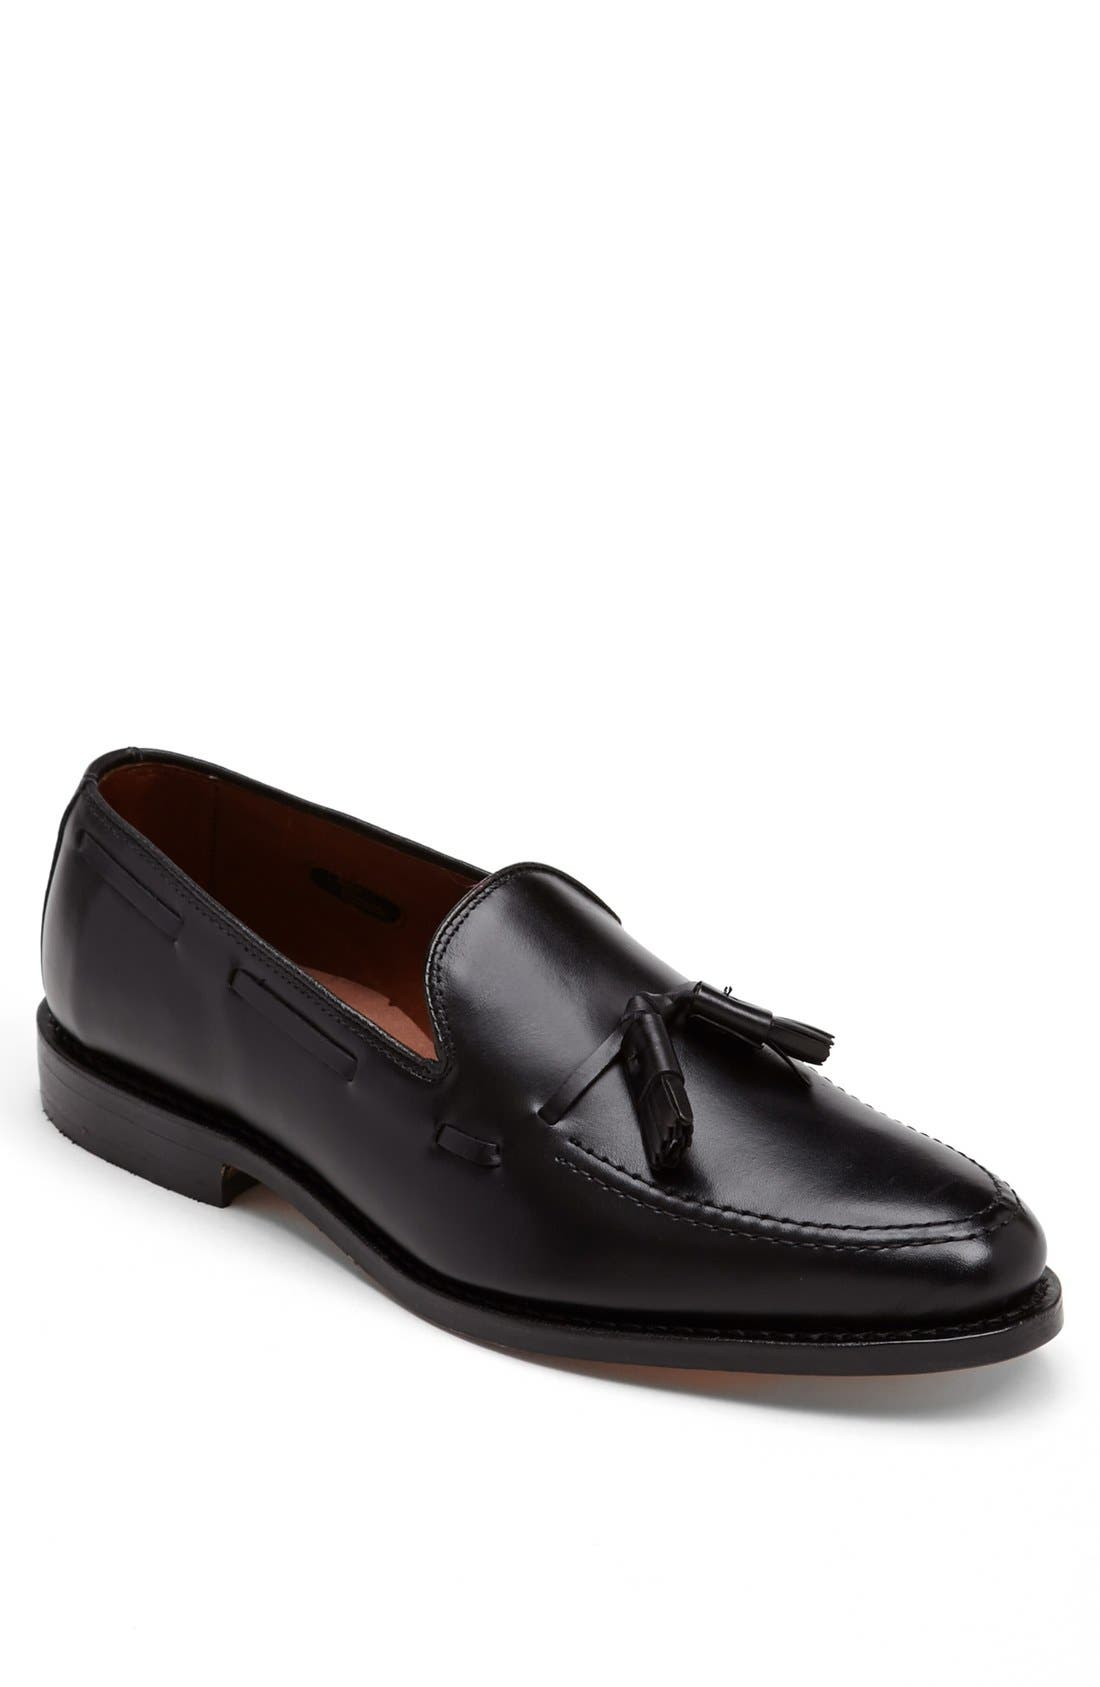 Main Image - Allen Edmonds 'Grayson' Tassel Loafer (Men)